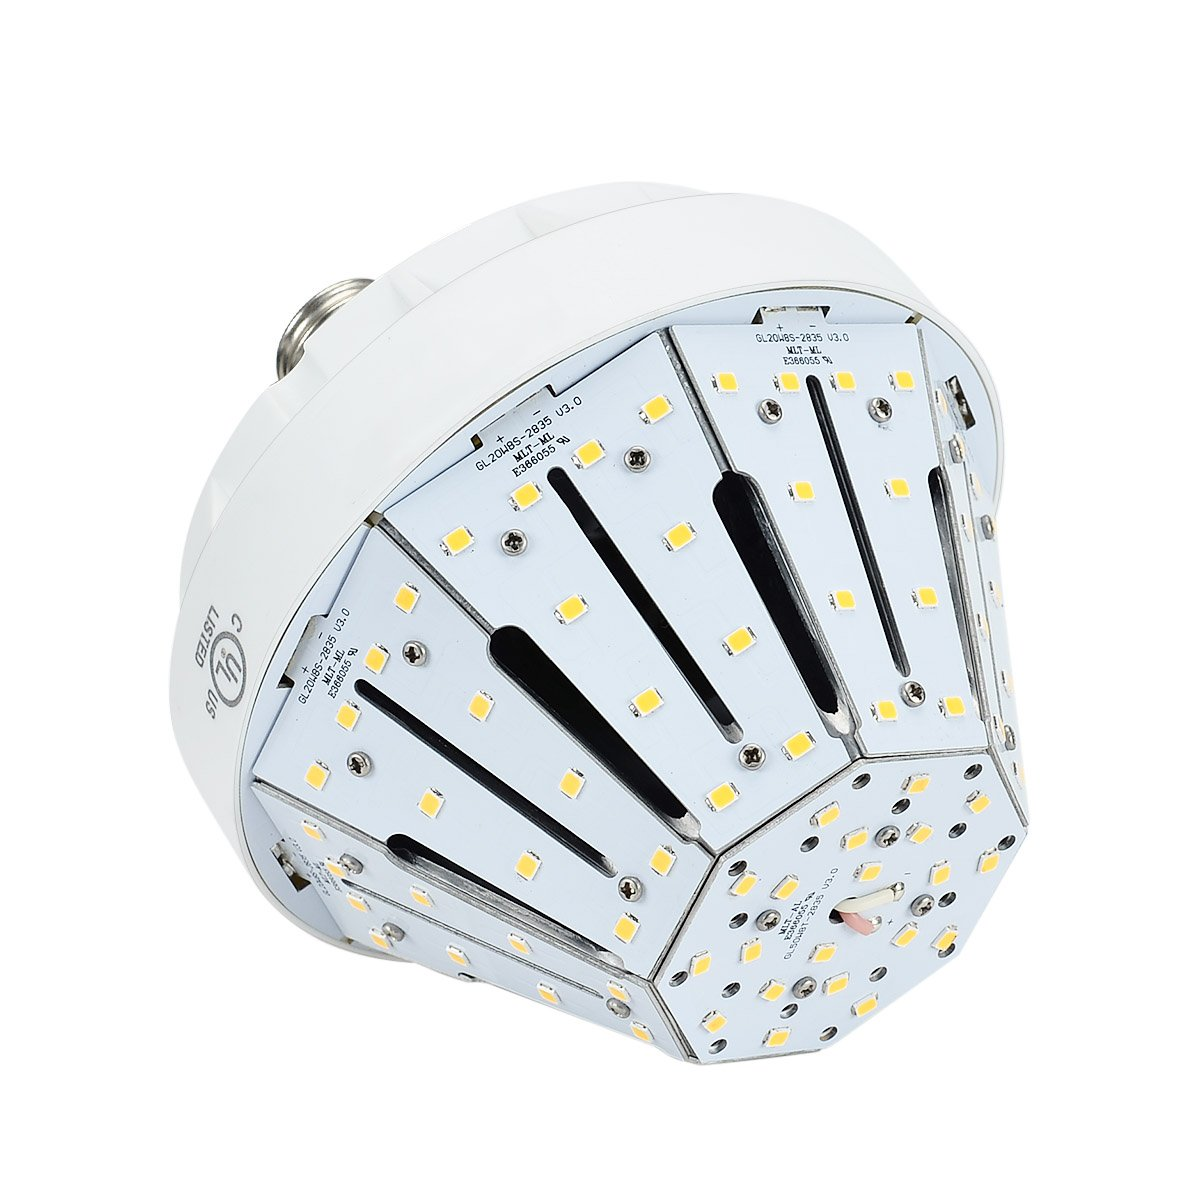 20W Daylight LED Corn Light Bulb for Indoor Outdoor Large Area - E26 3500Lm 5000K for Street Lamp Parking Lot Post Lighting Garage Warehouse High Bay Barn Porch Backyard Garden Airport Super Bright